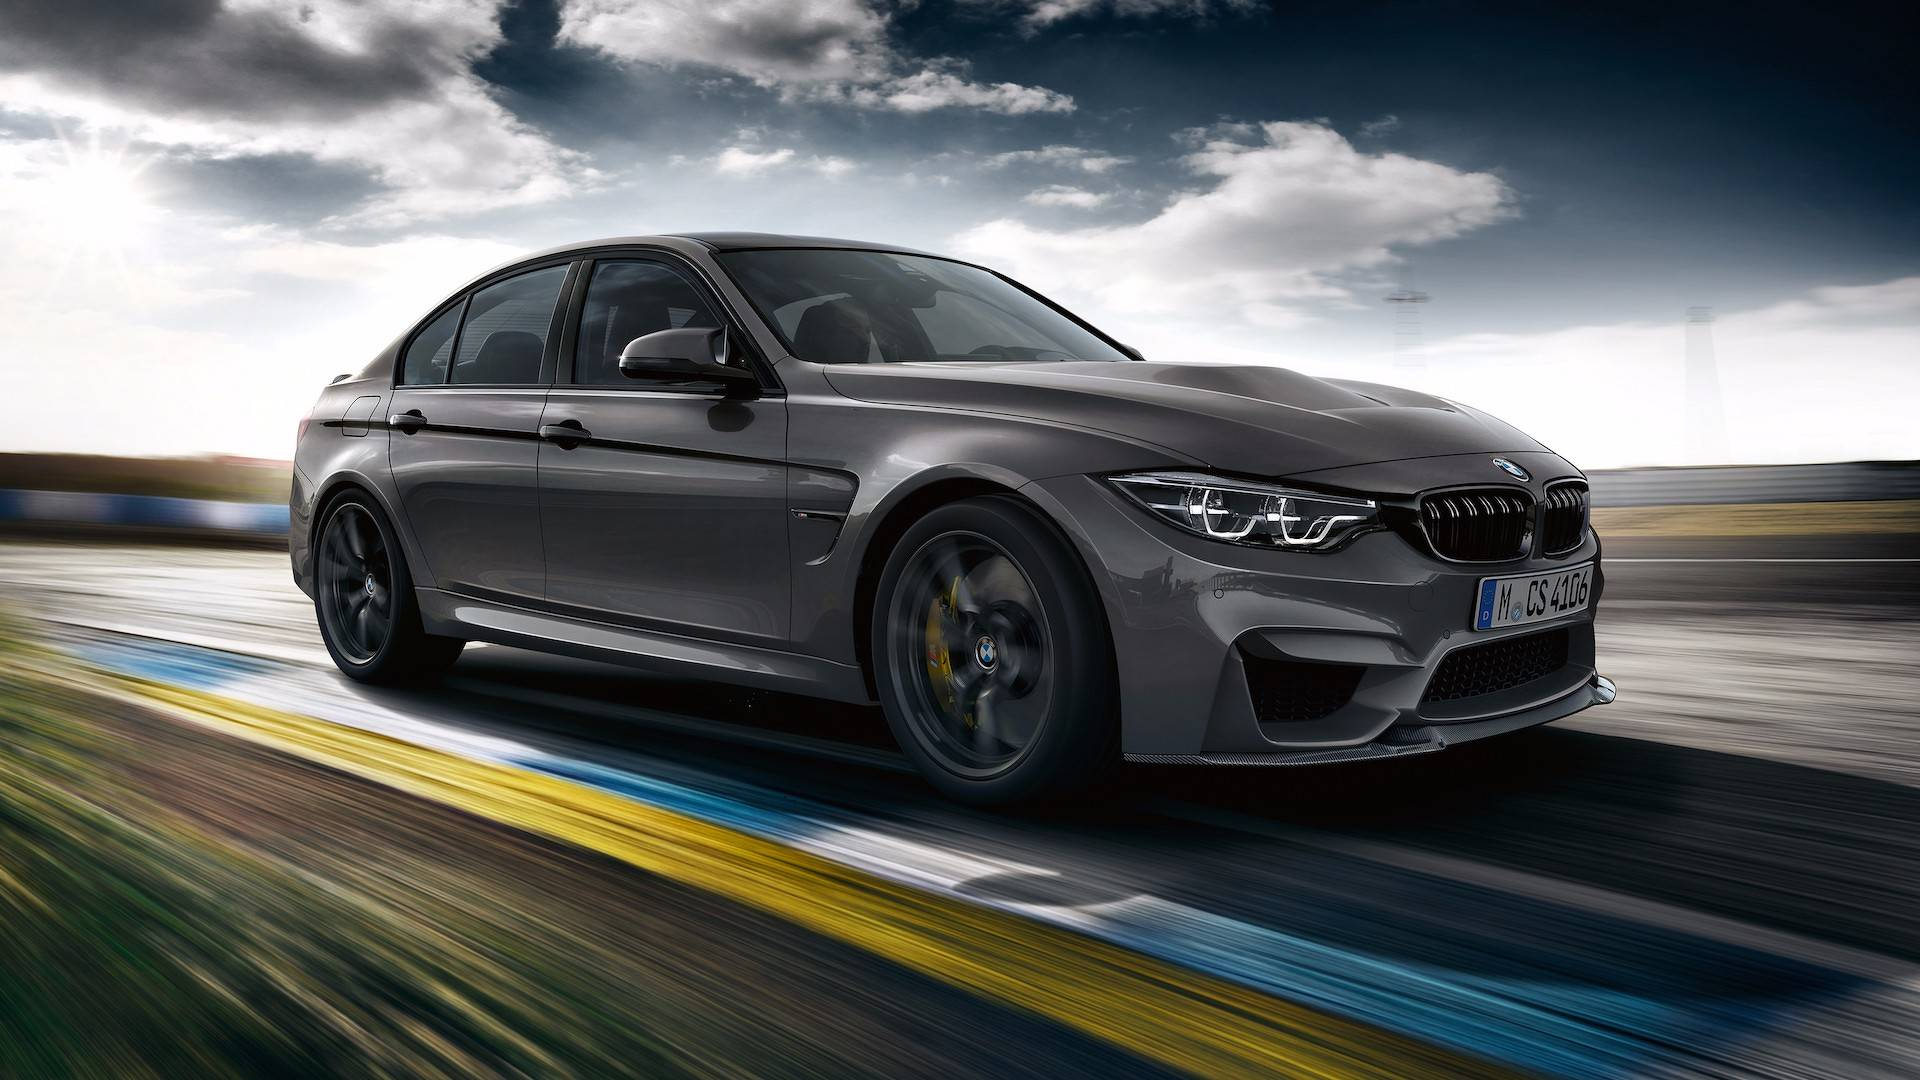 Could The Current Bmw M3 Be Discontinued In May